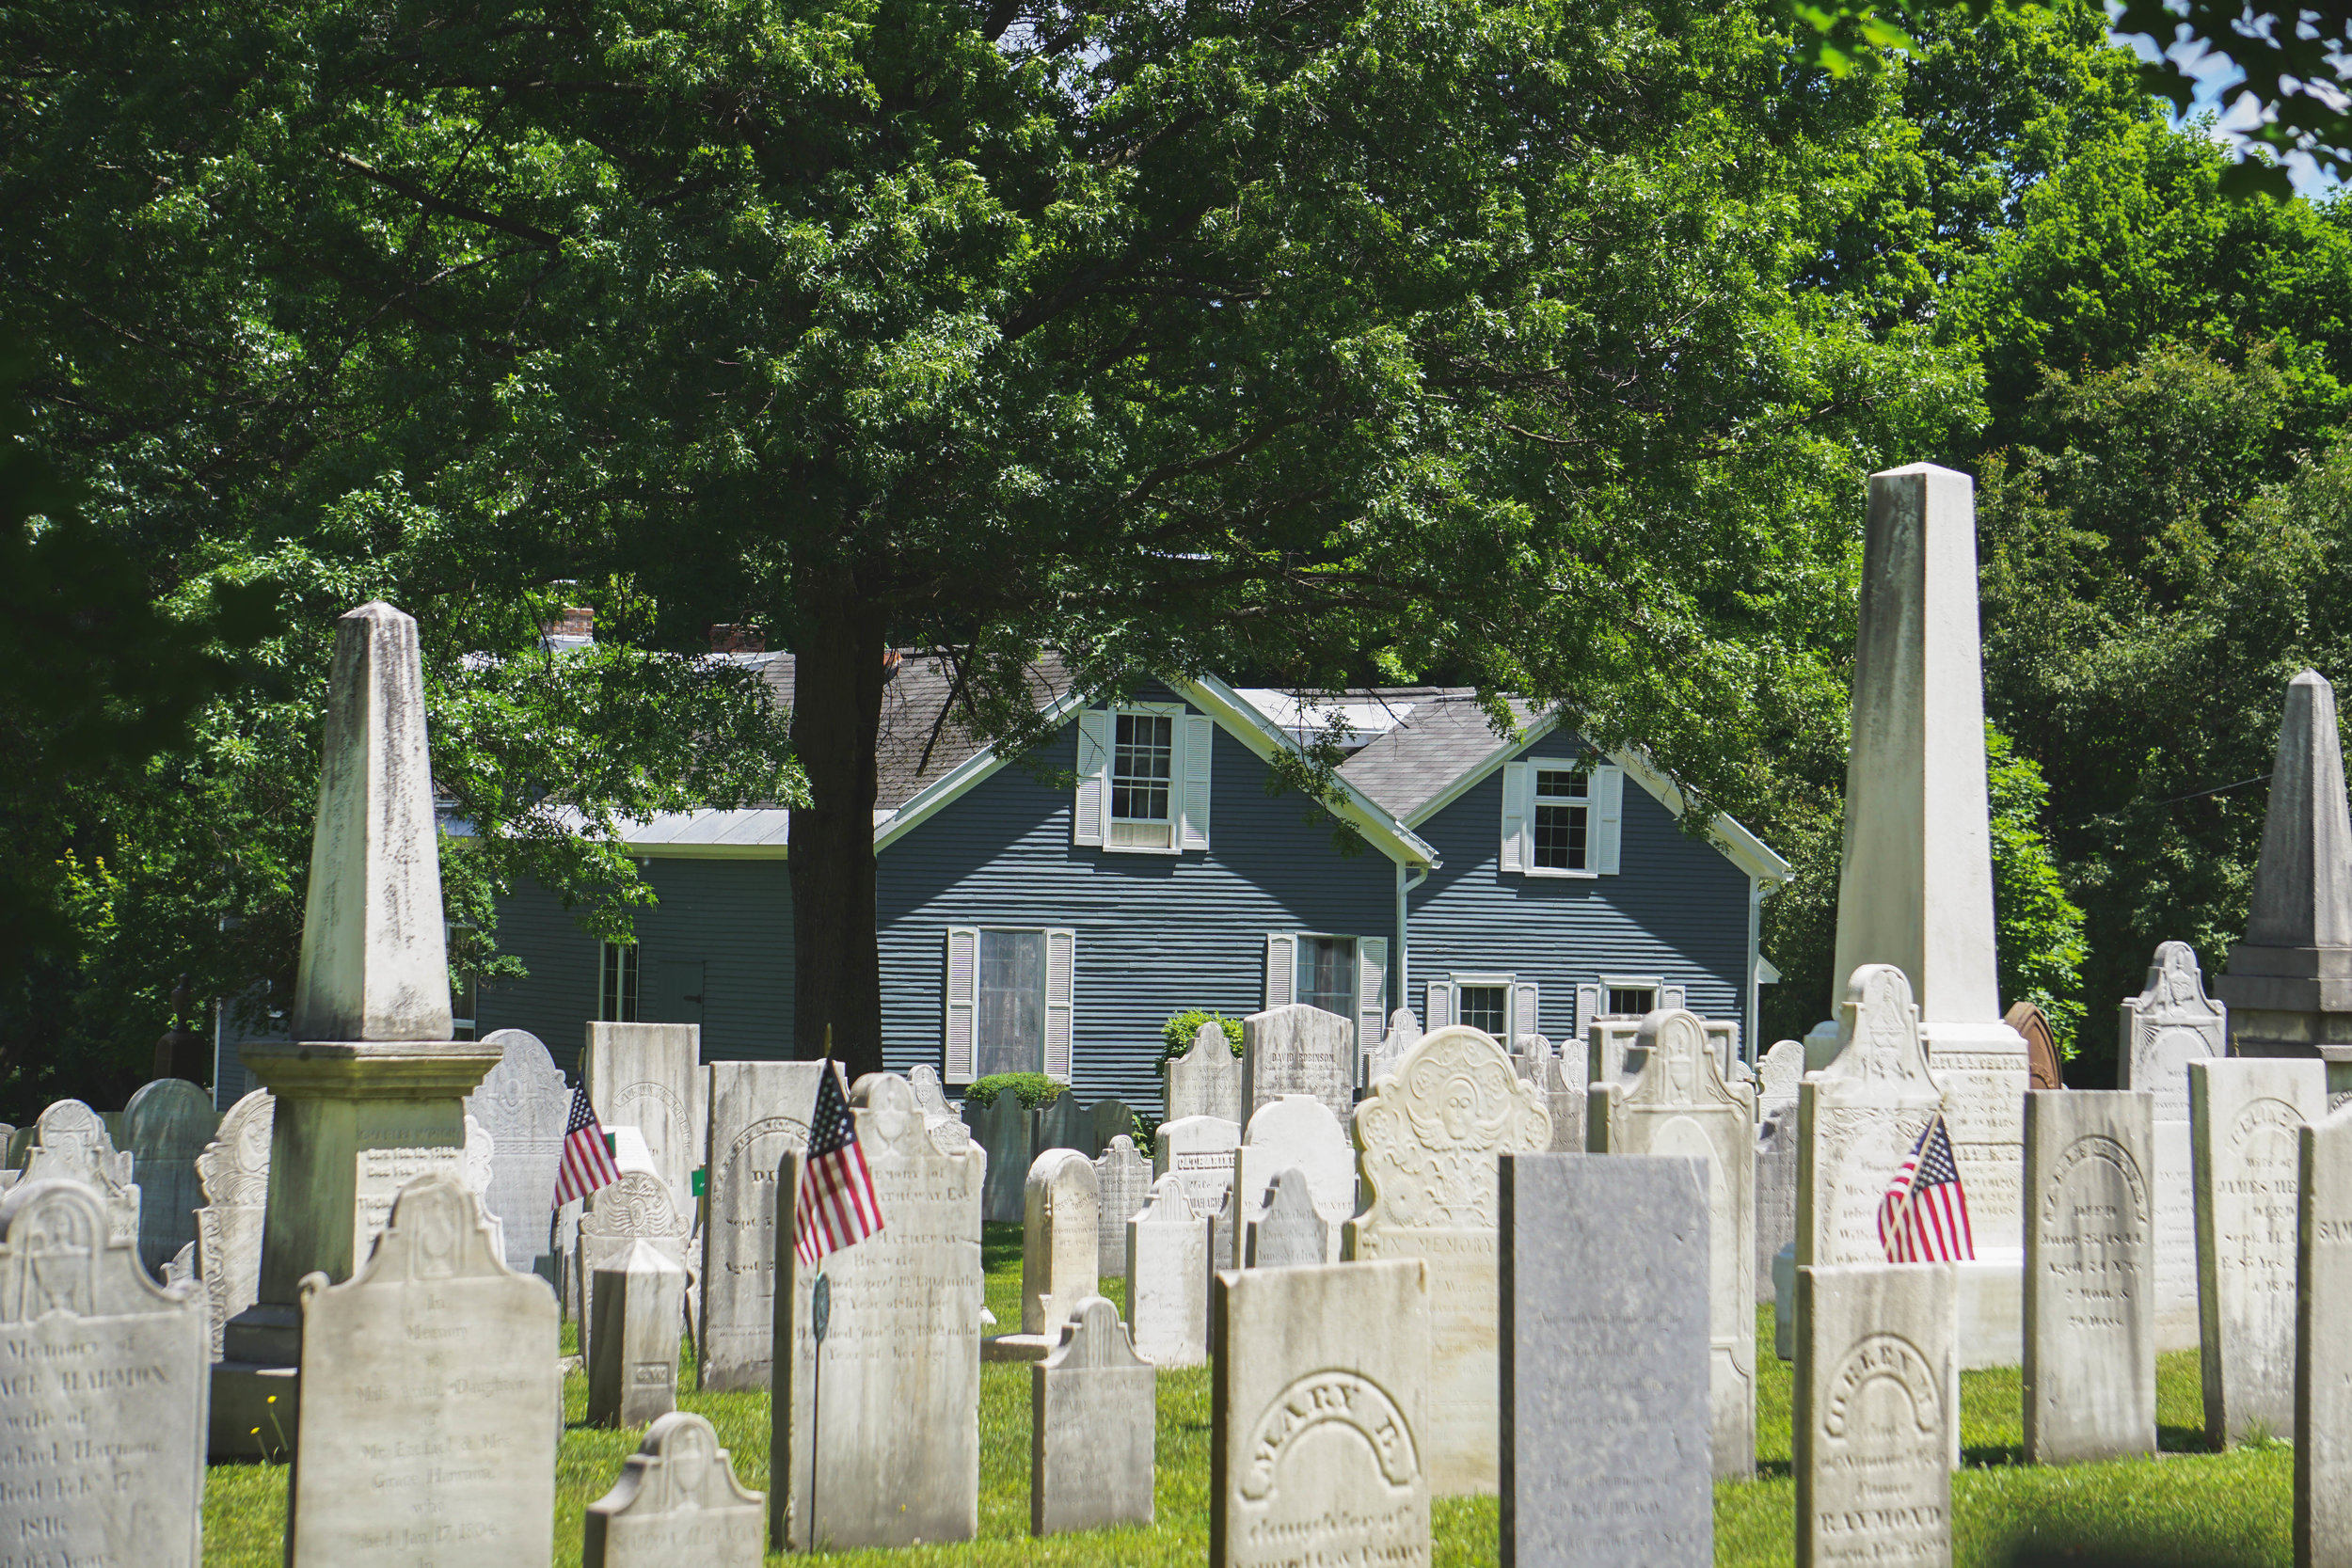 The final resting place of poet Robert Frost in historic Old First Church Cemetary Bennington, VT.